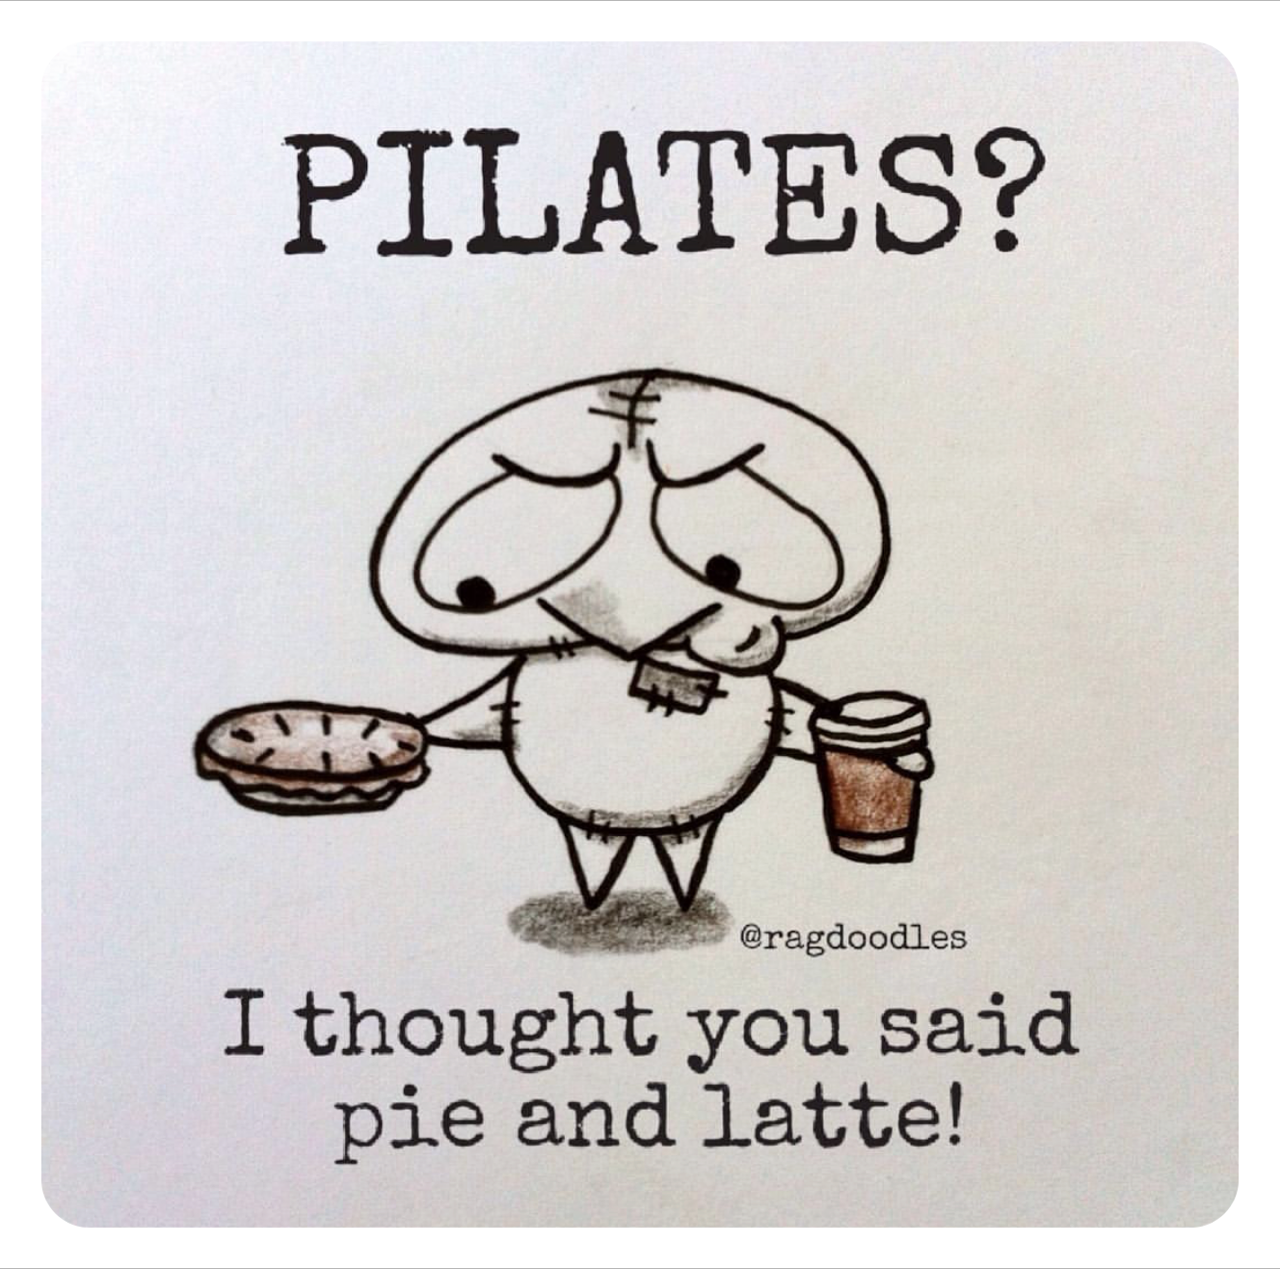 189a9163dce4dbf31d16972b71421eff ragdoodles meme cartoon relatable quote drawing funny pilates i